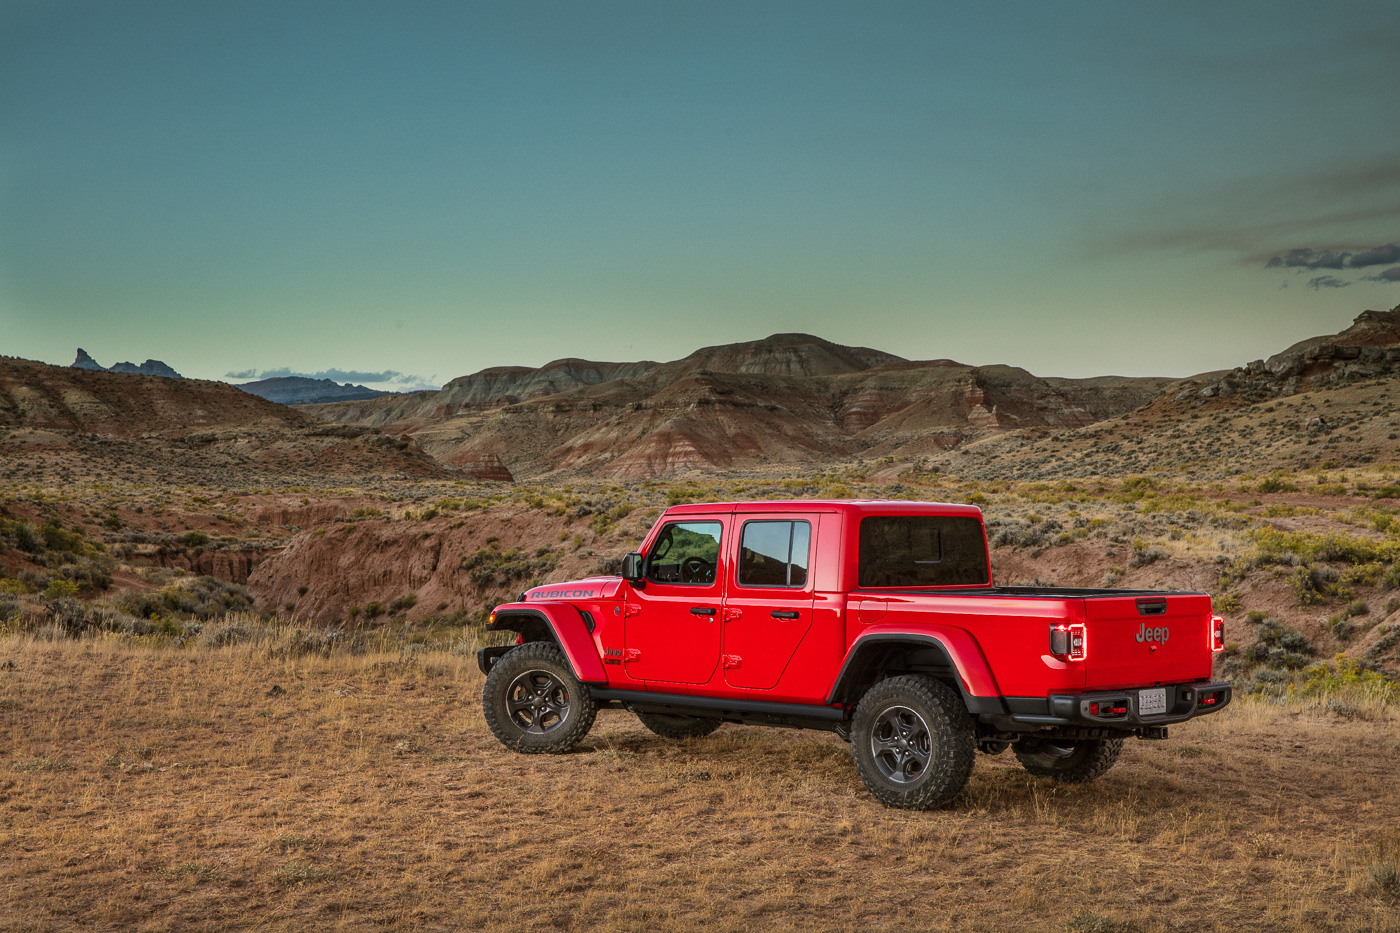 Jeep-Gladiator-Rubicon-73.jpg